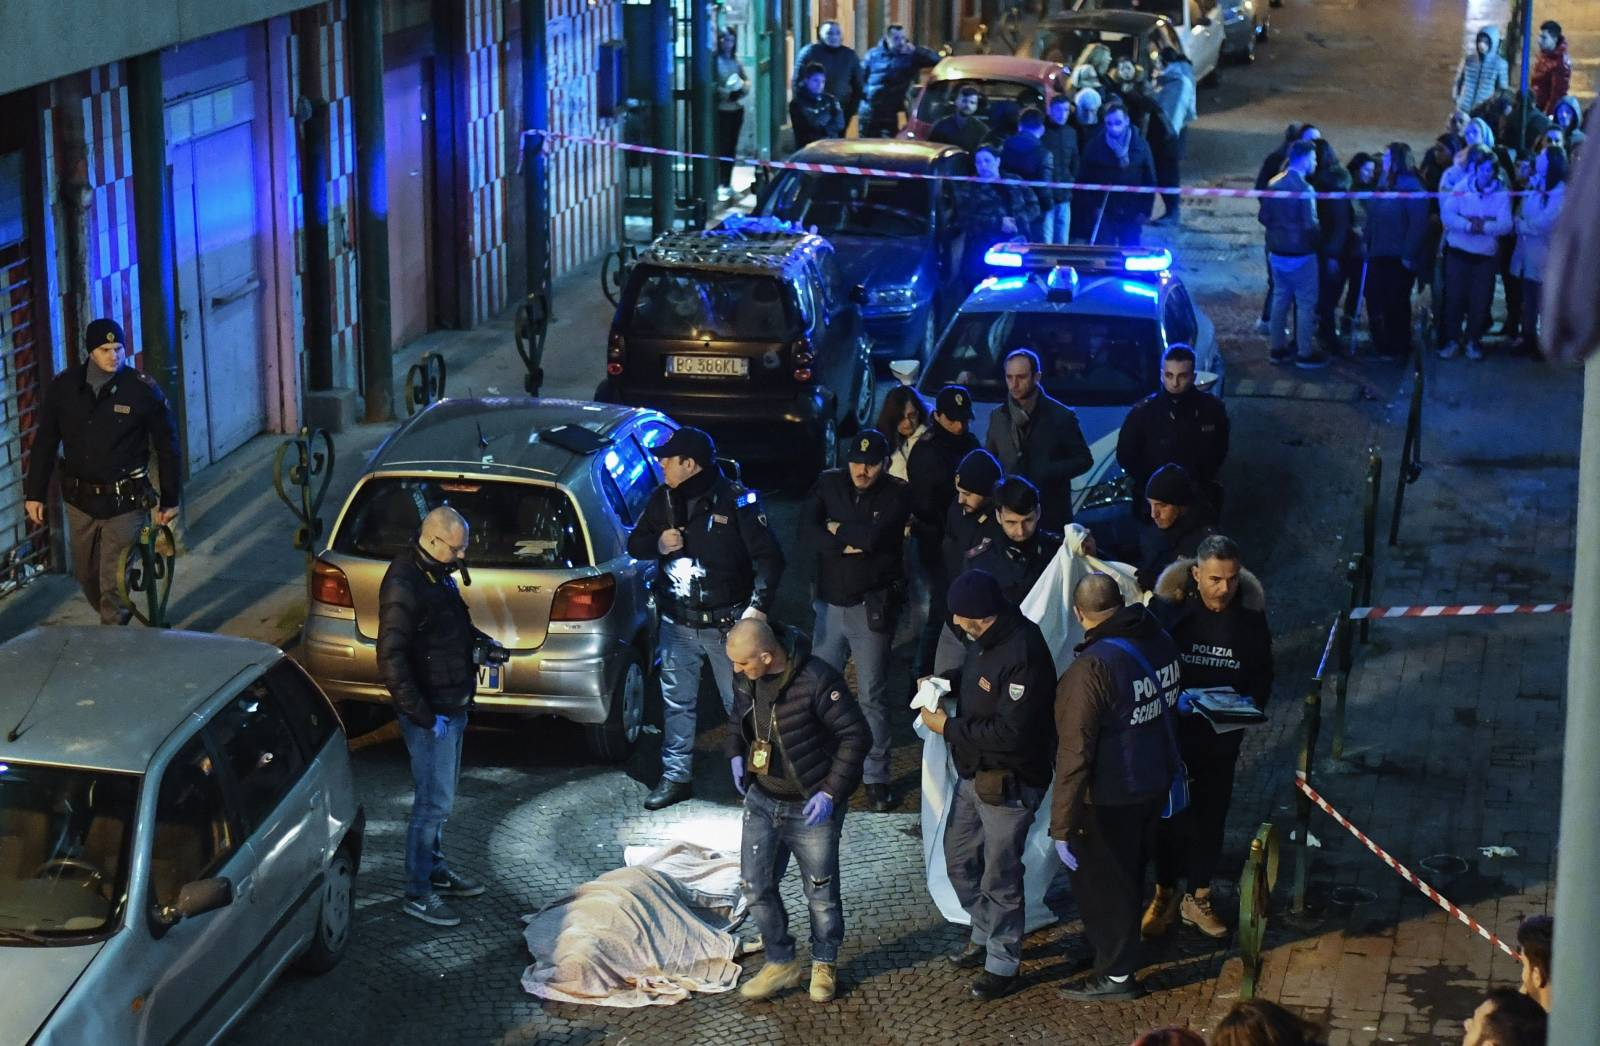 Camorra's ambush, a 54-year-old woman, Annamaria Palmieri, was killed in an ambush in via del'Alveo Artificiale, in the district of San Giovanni a Teduccio in Naples.